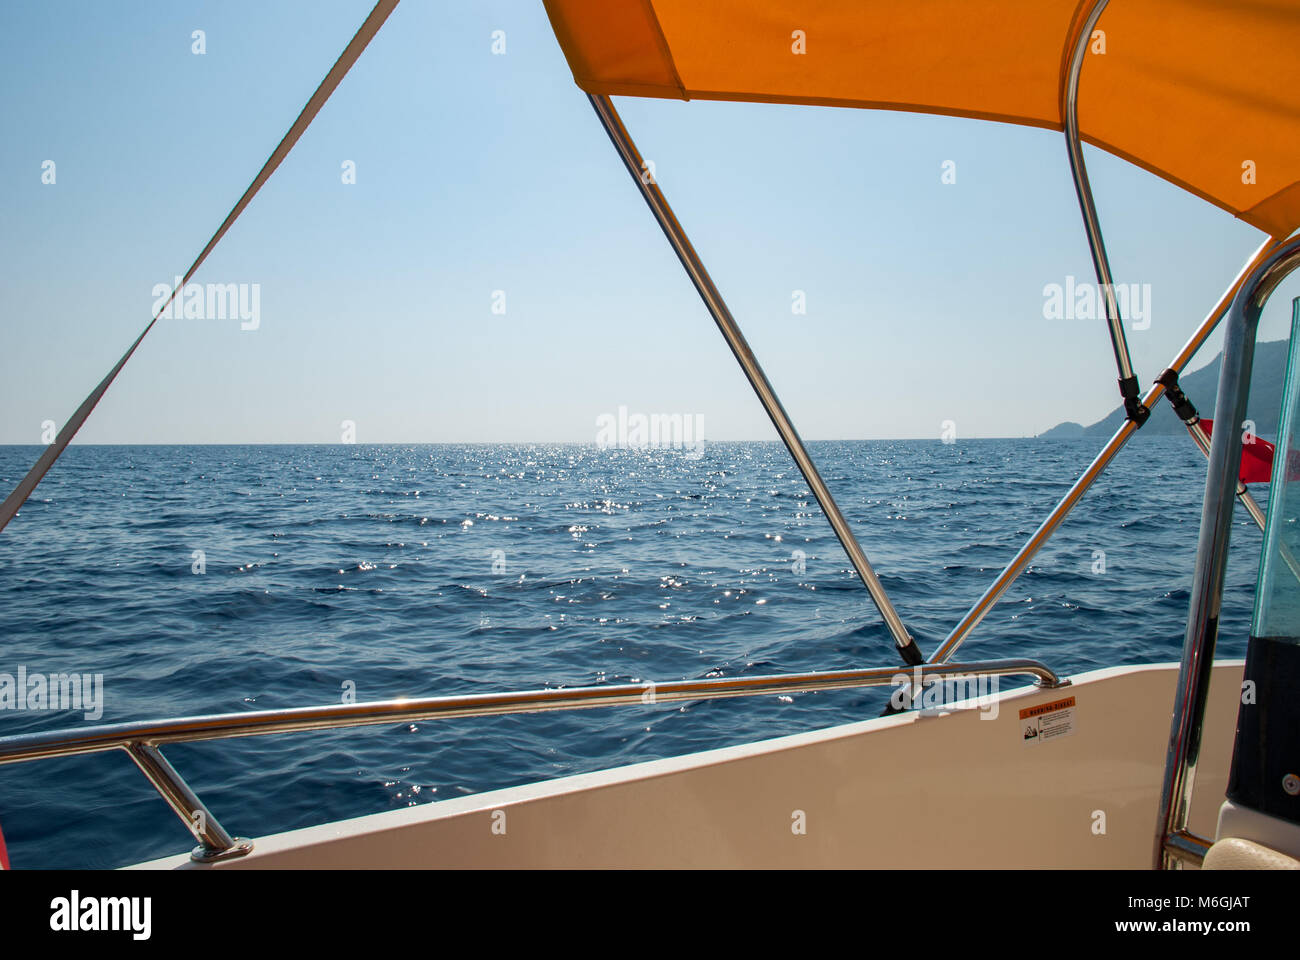 the open boat point of view